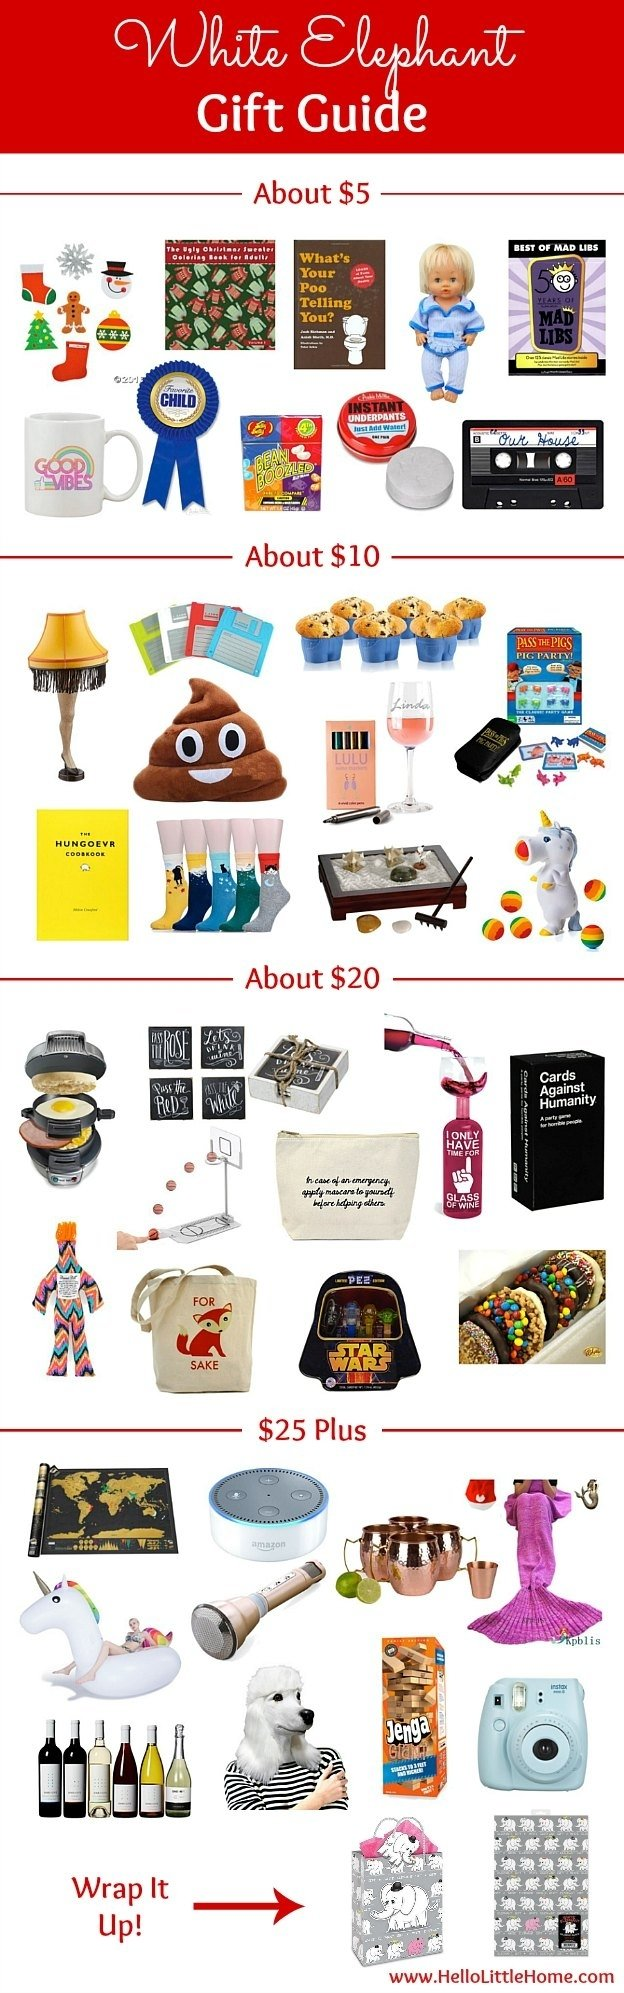 10 Attractive Office Yankee Swap Gift Ideas white elephant gift guide 6 2020